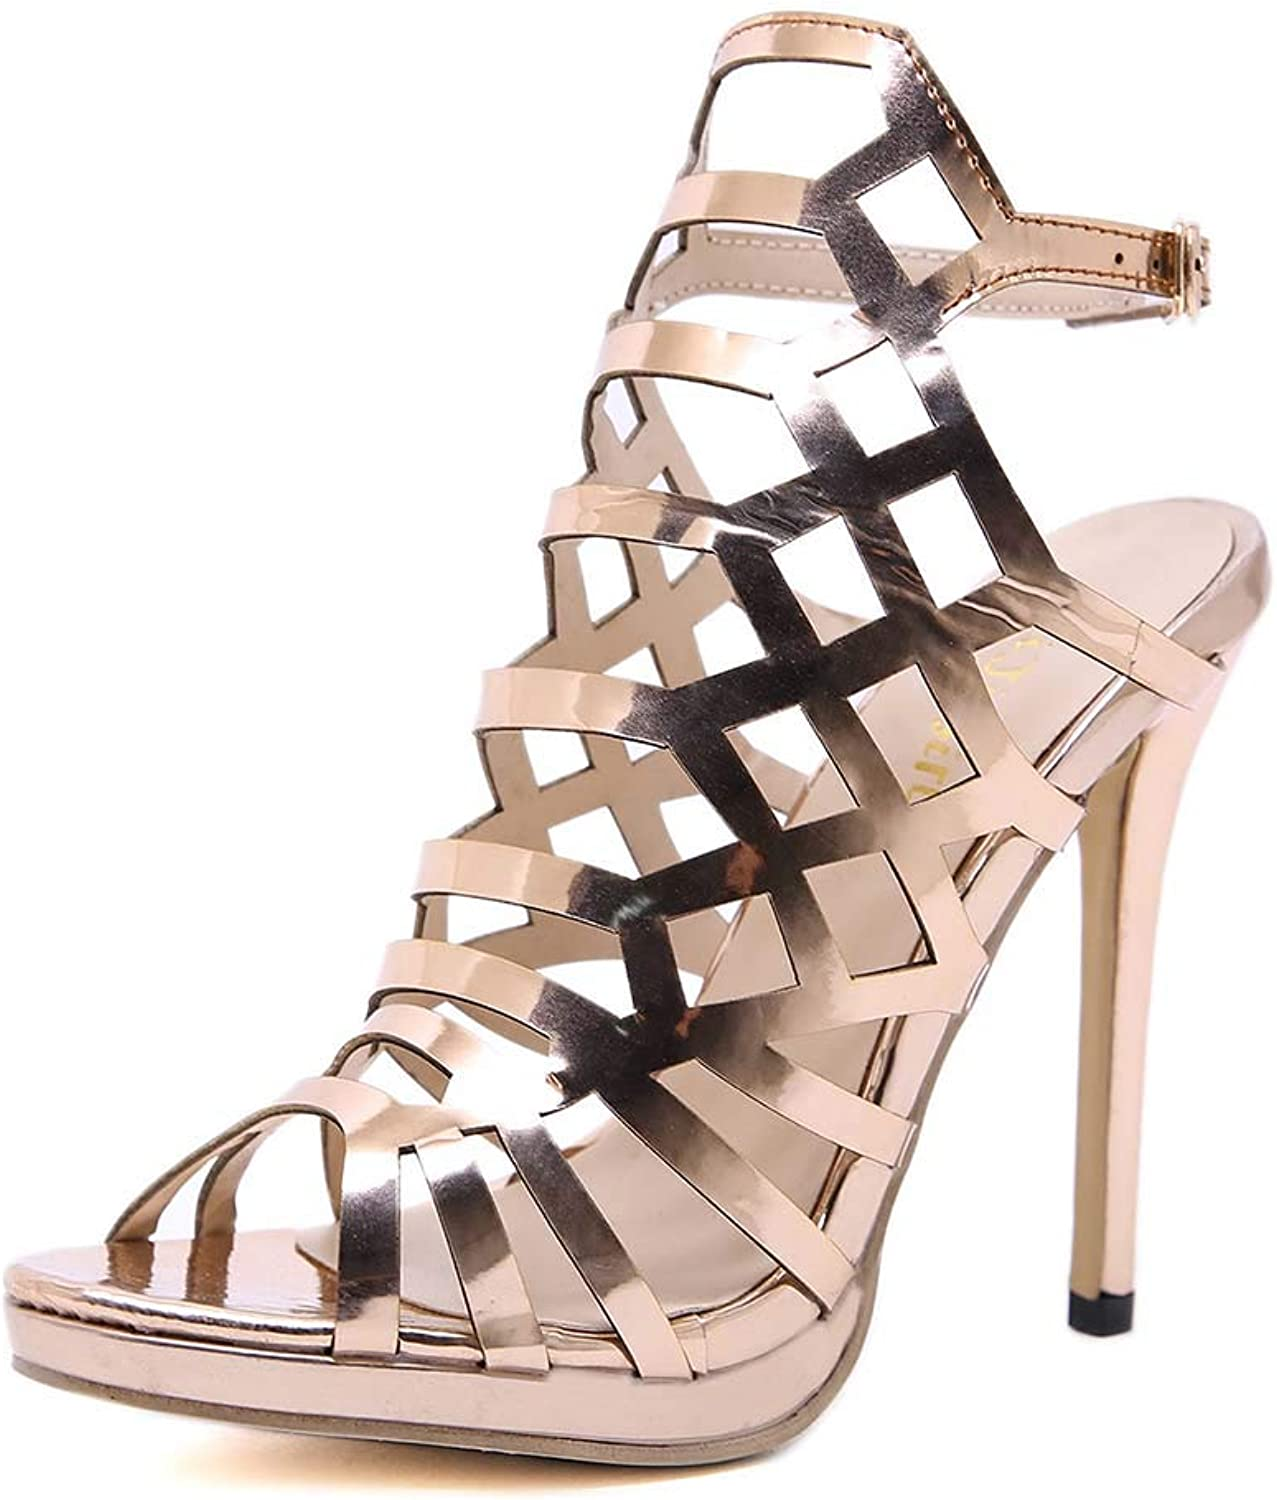 Women's Sandals Artificial PU gold Hollow high Heels Buckle Open Toe fine with Single shoes Spring and Summer New